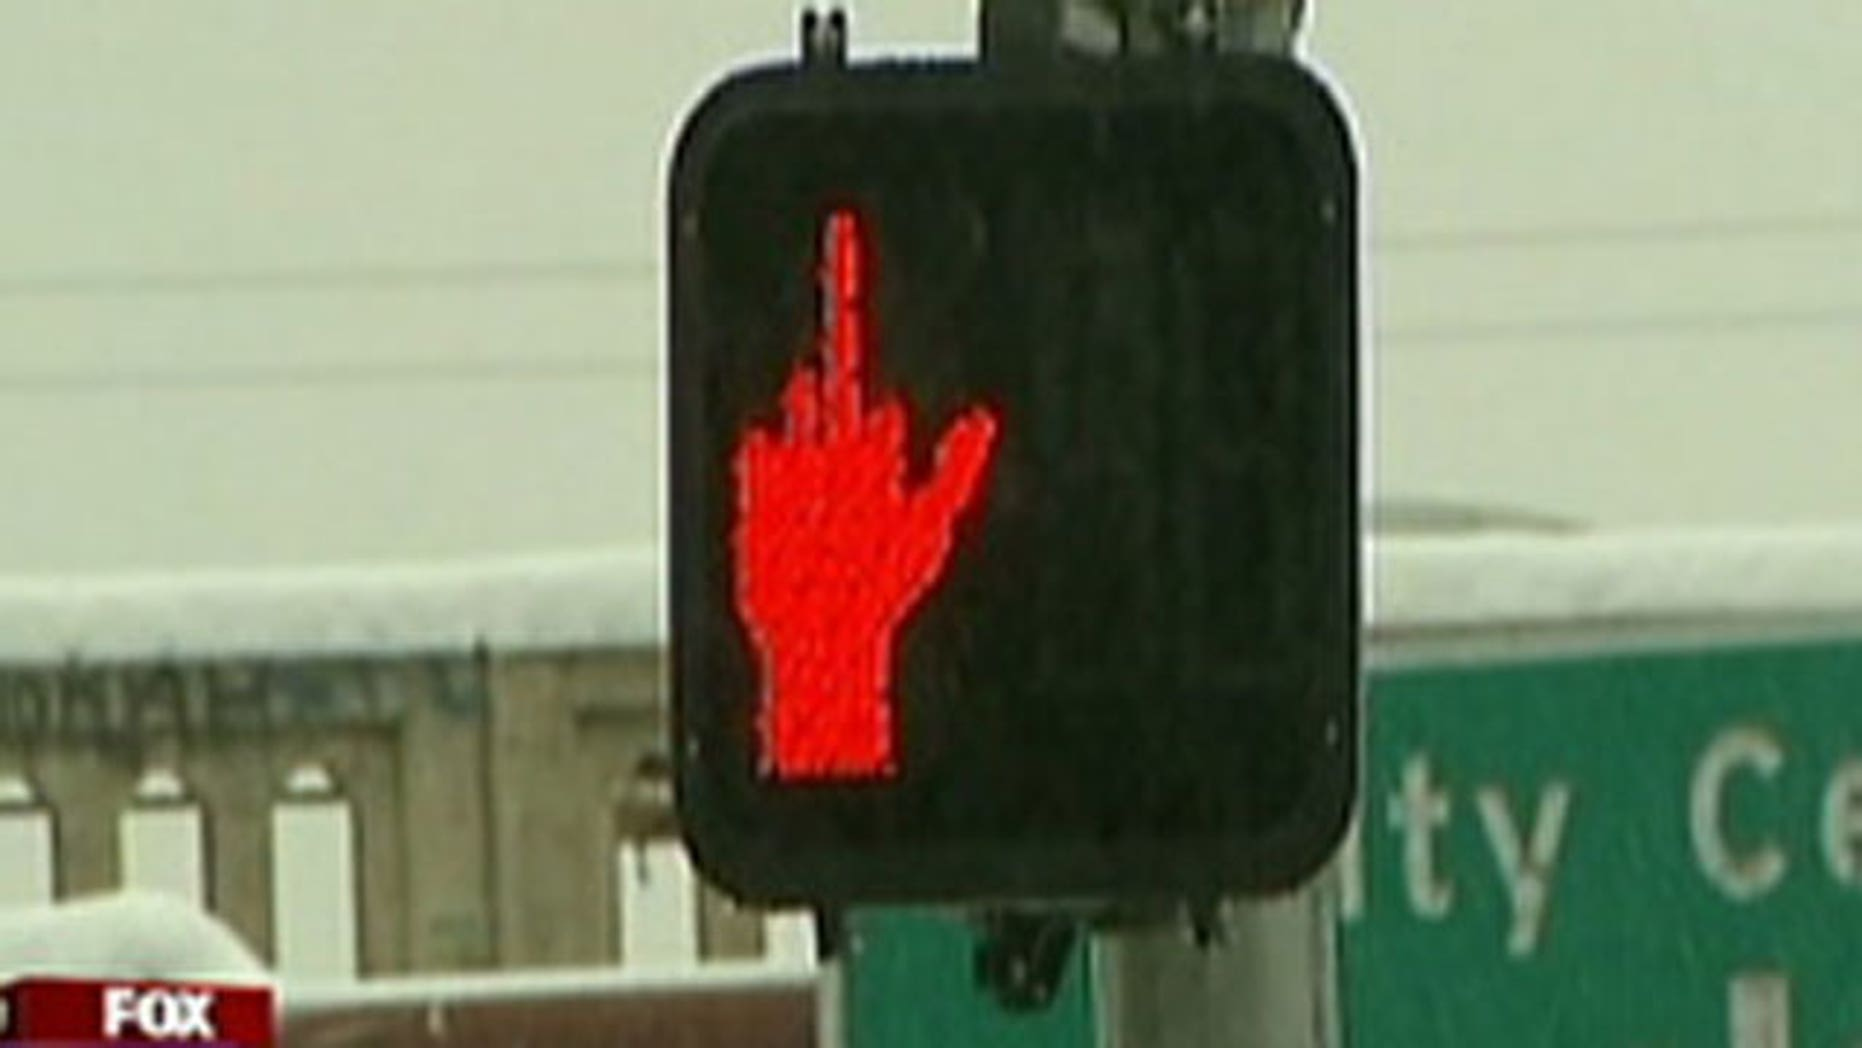 A crosswalk sign in Spokane, Washington was obscured on December 2, 2010 and appeared to be giving pedestrians the middle finger.